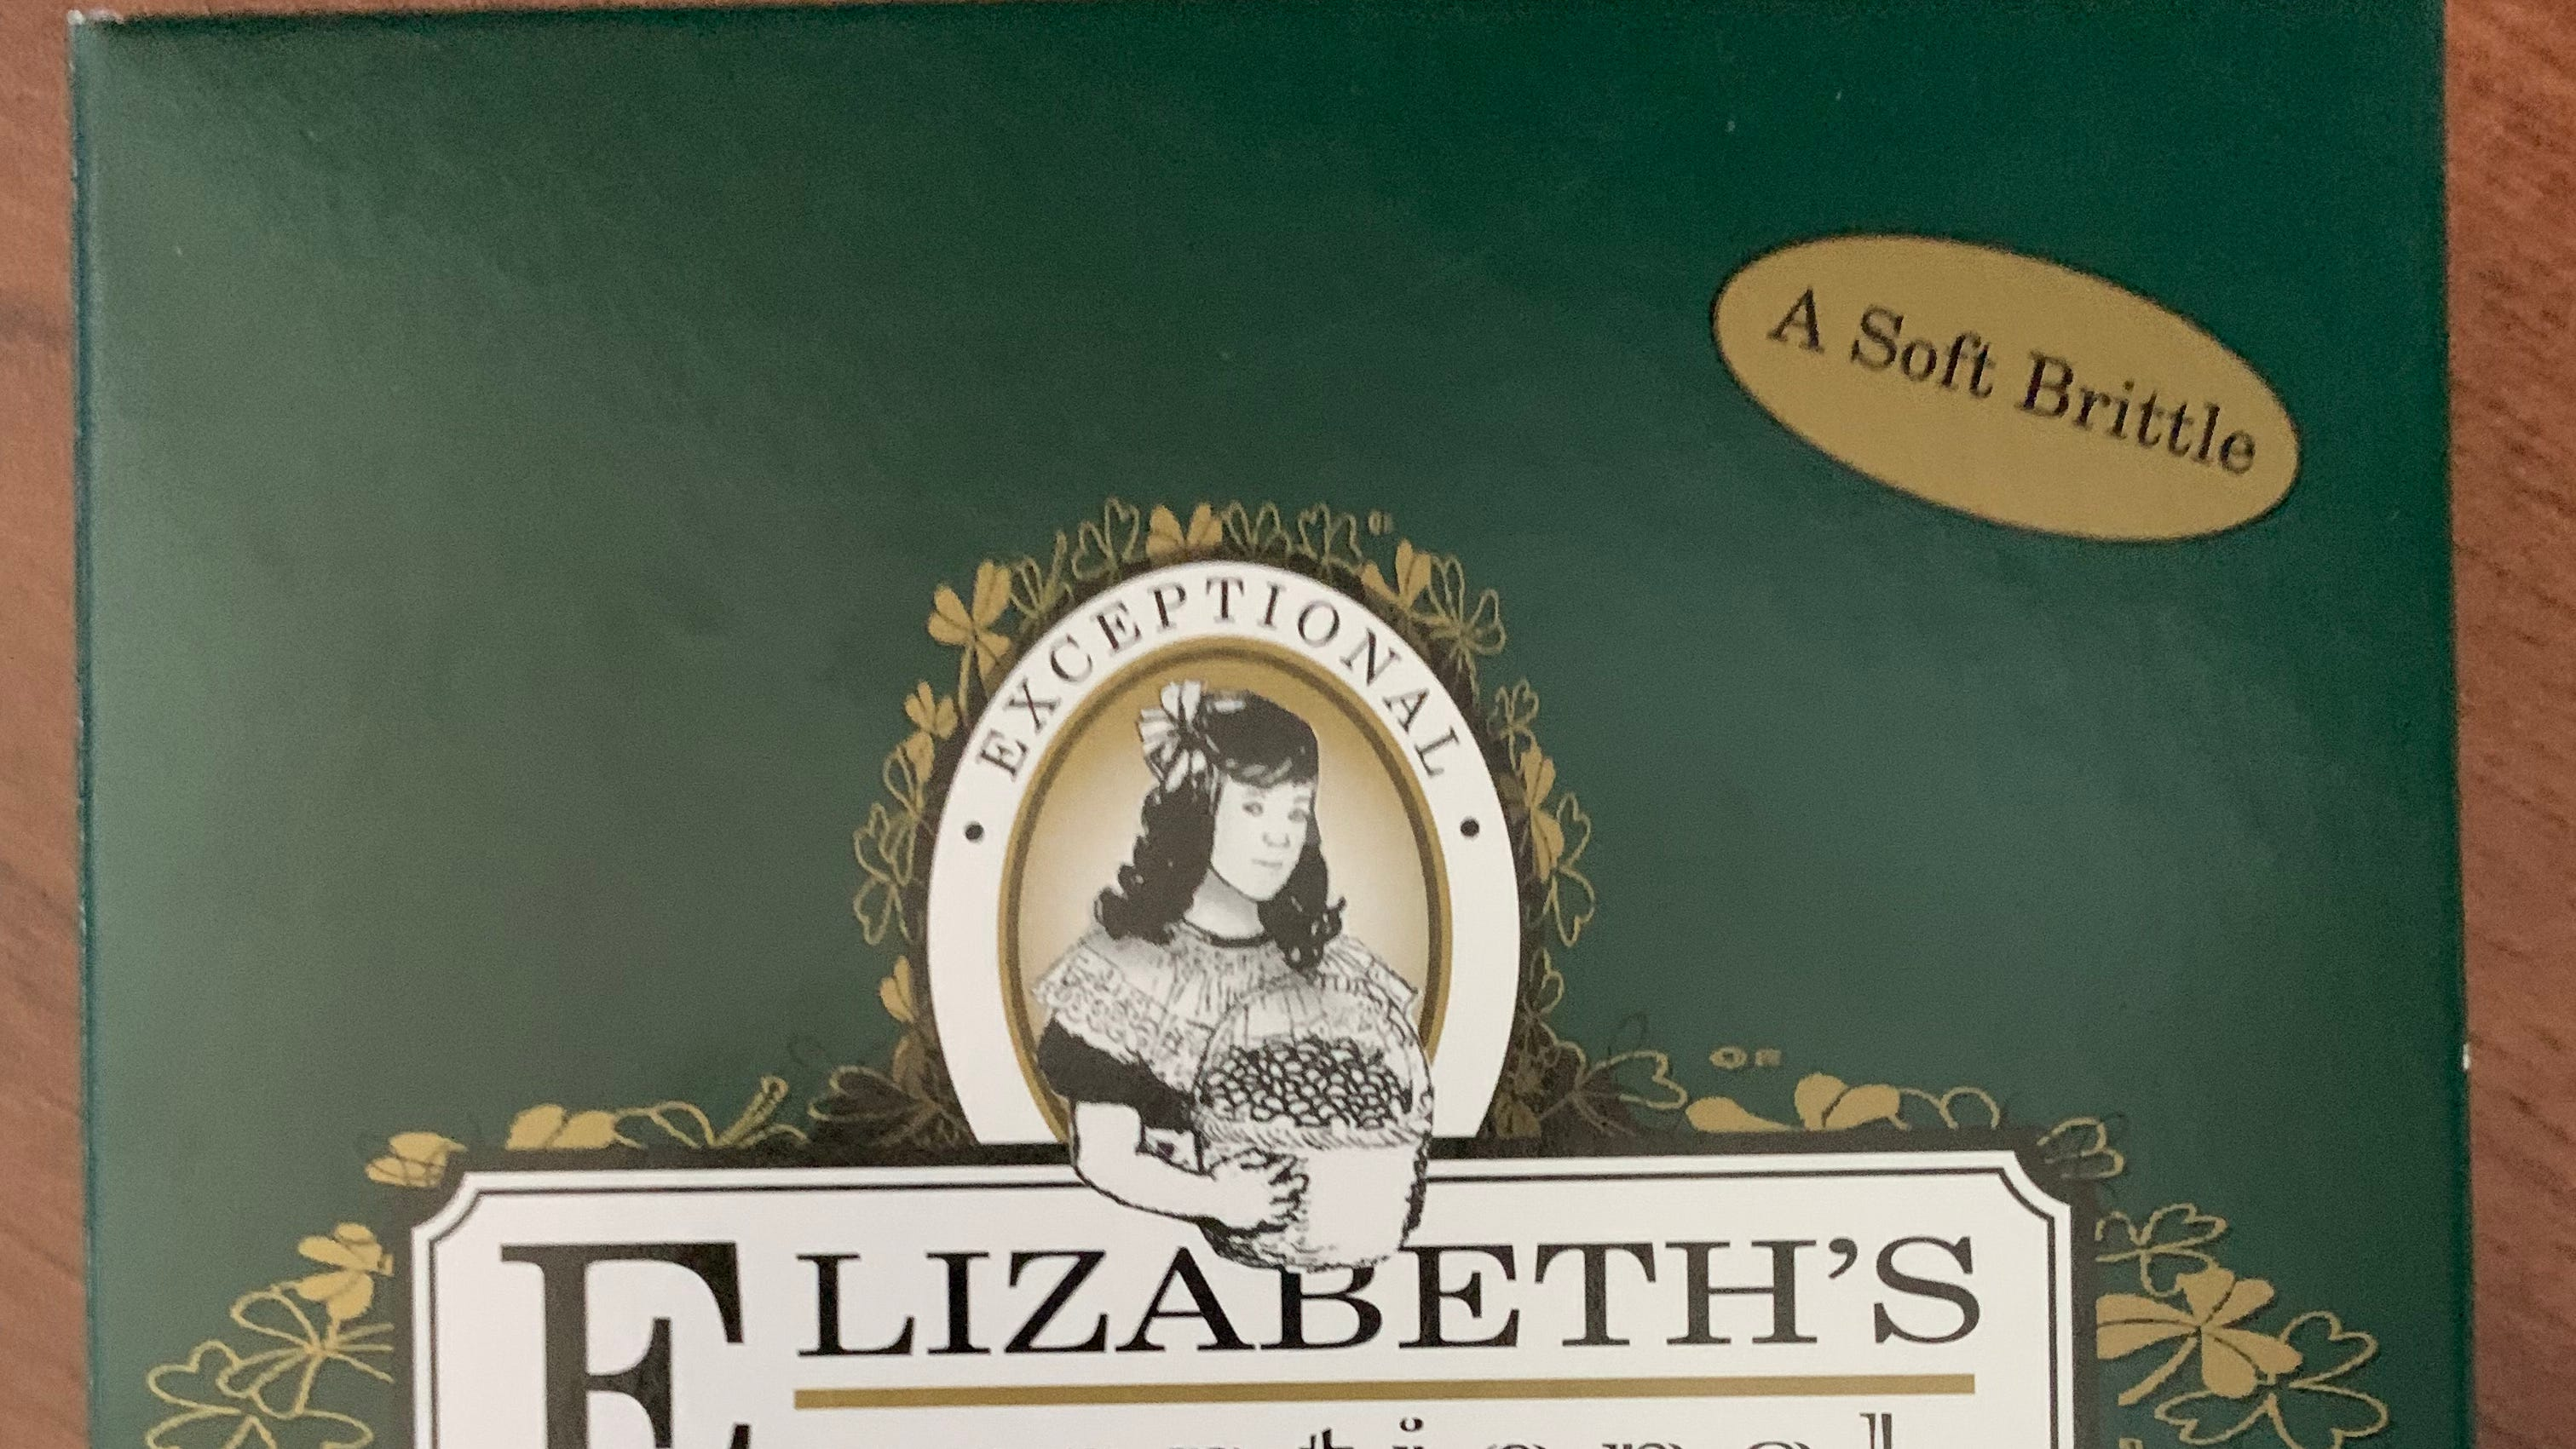 Elizabeth's Pecans in Turkey carries an assortment of locally made products. The store has many sweet gift items and treats that make perfect gifts for this holiday season.